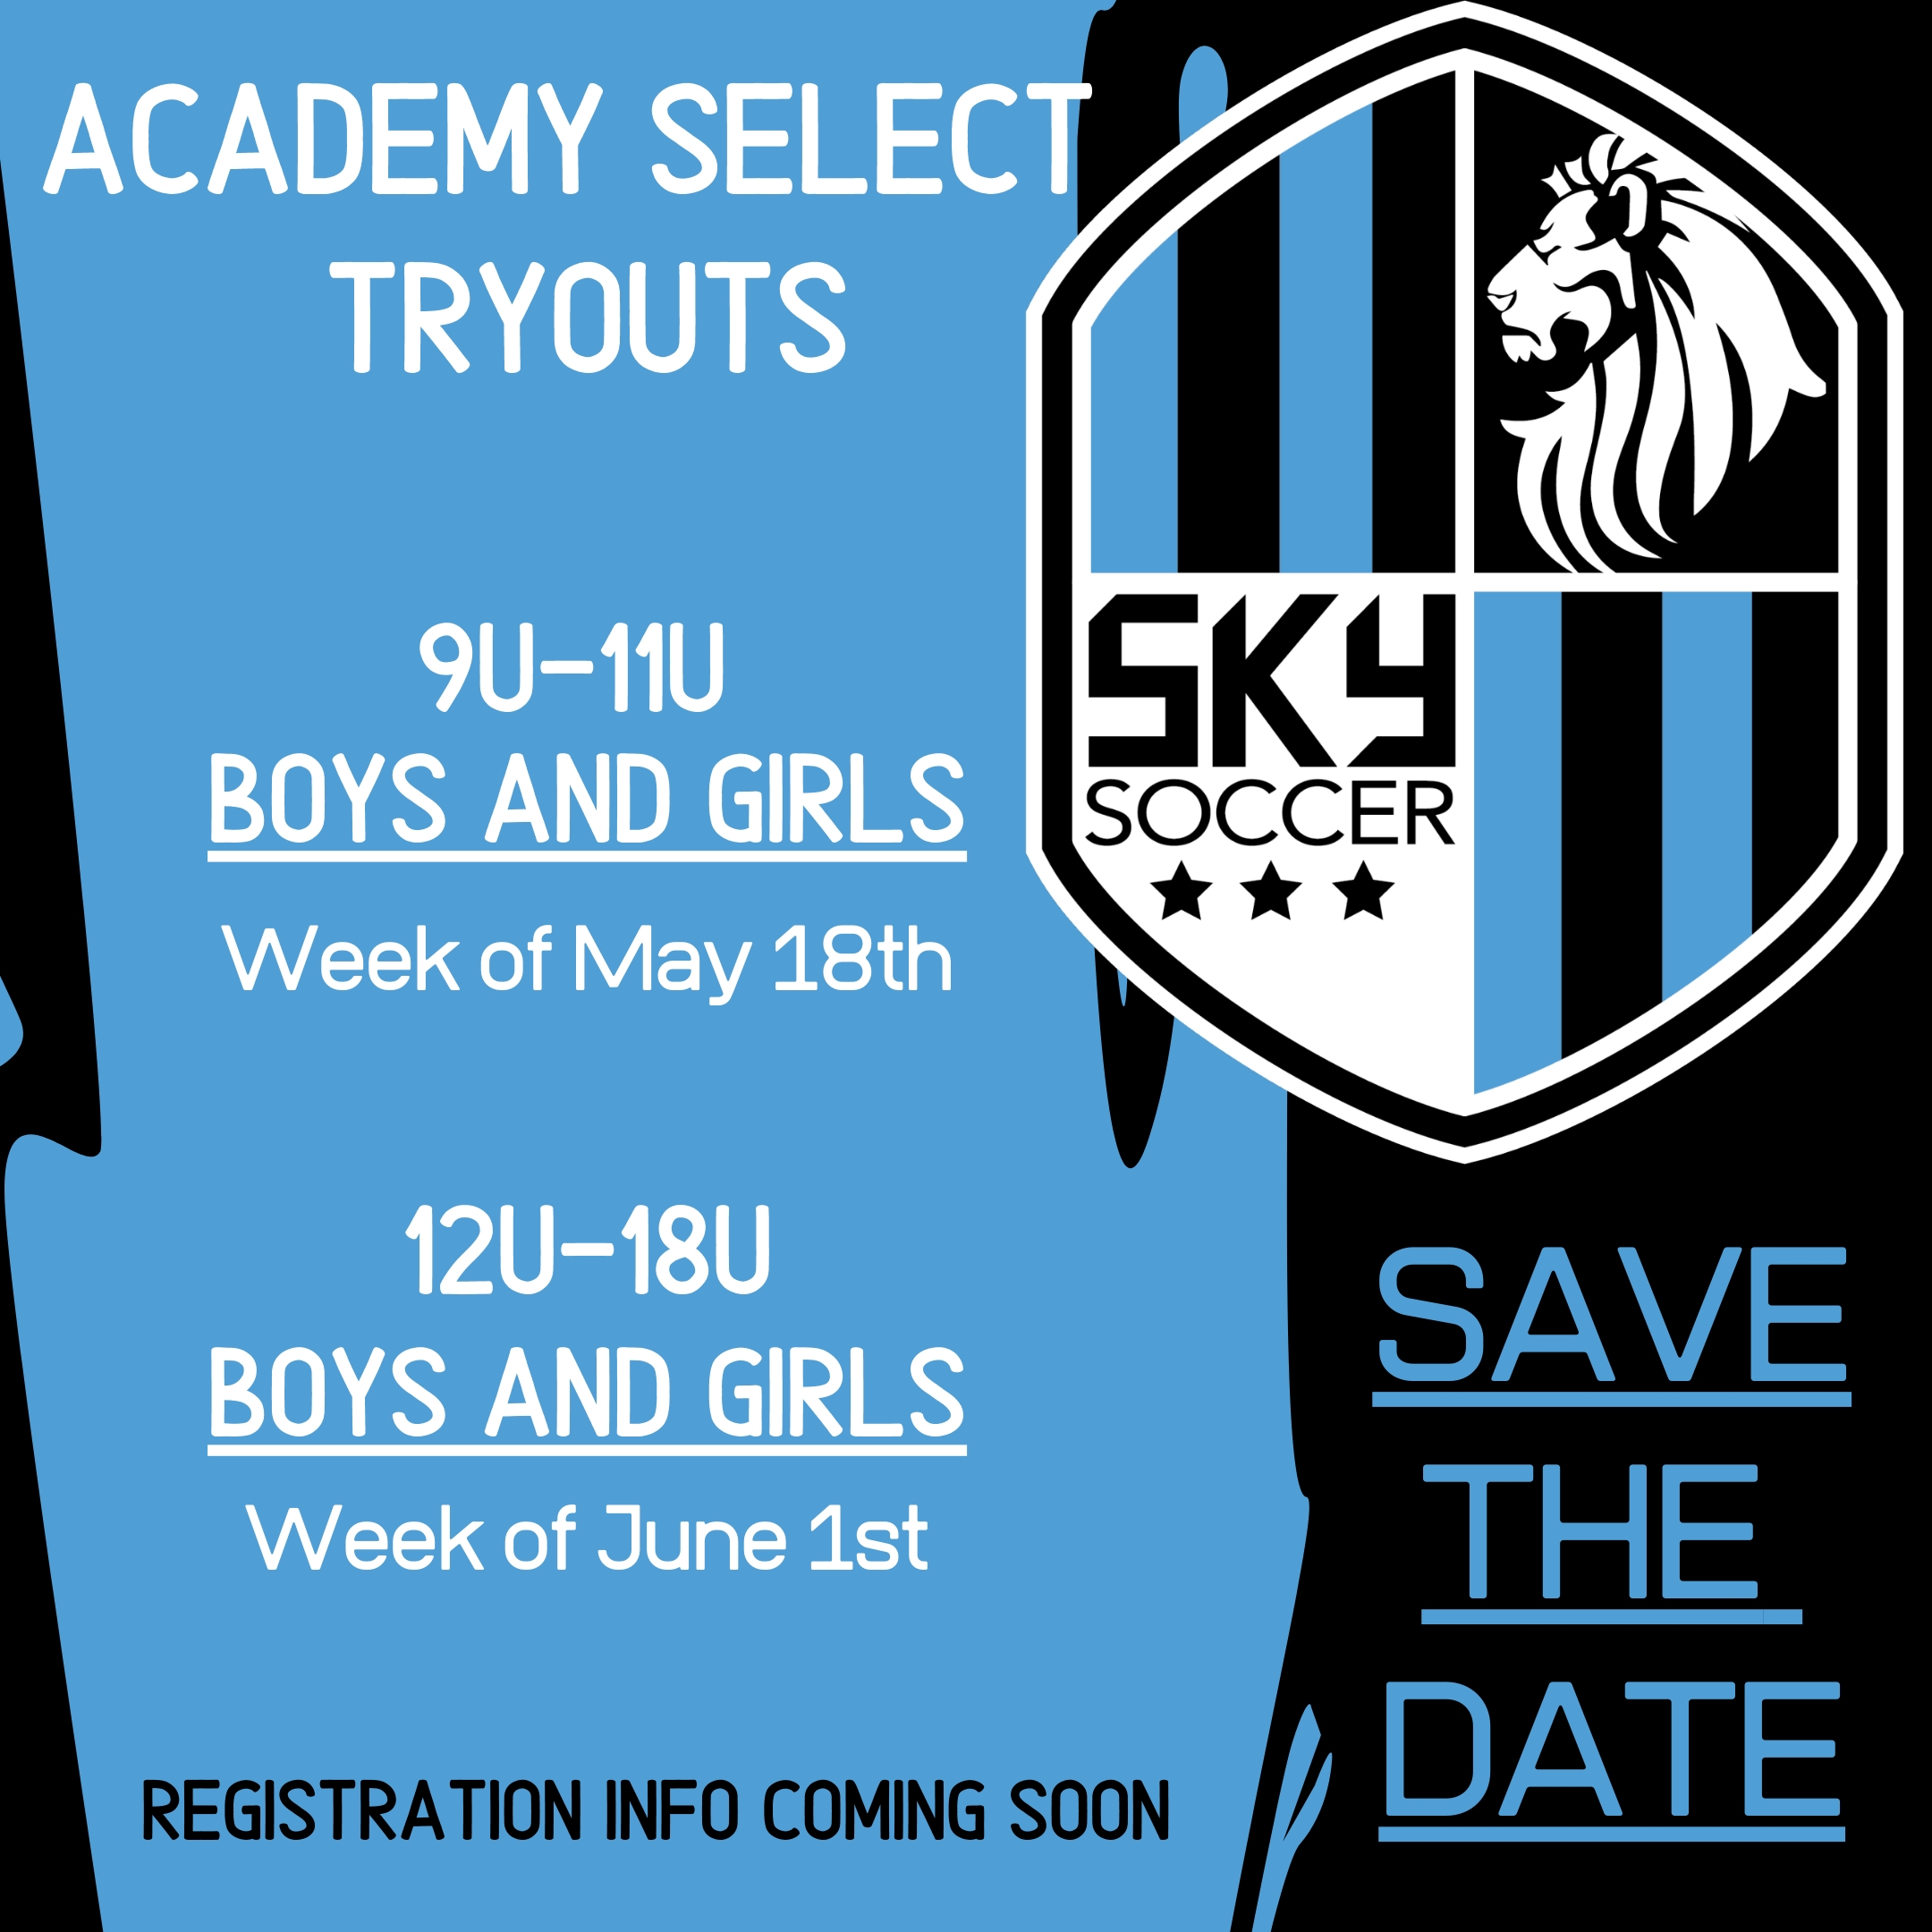 2020-2021 Tryout Information